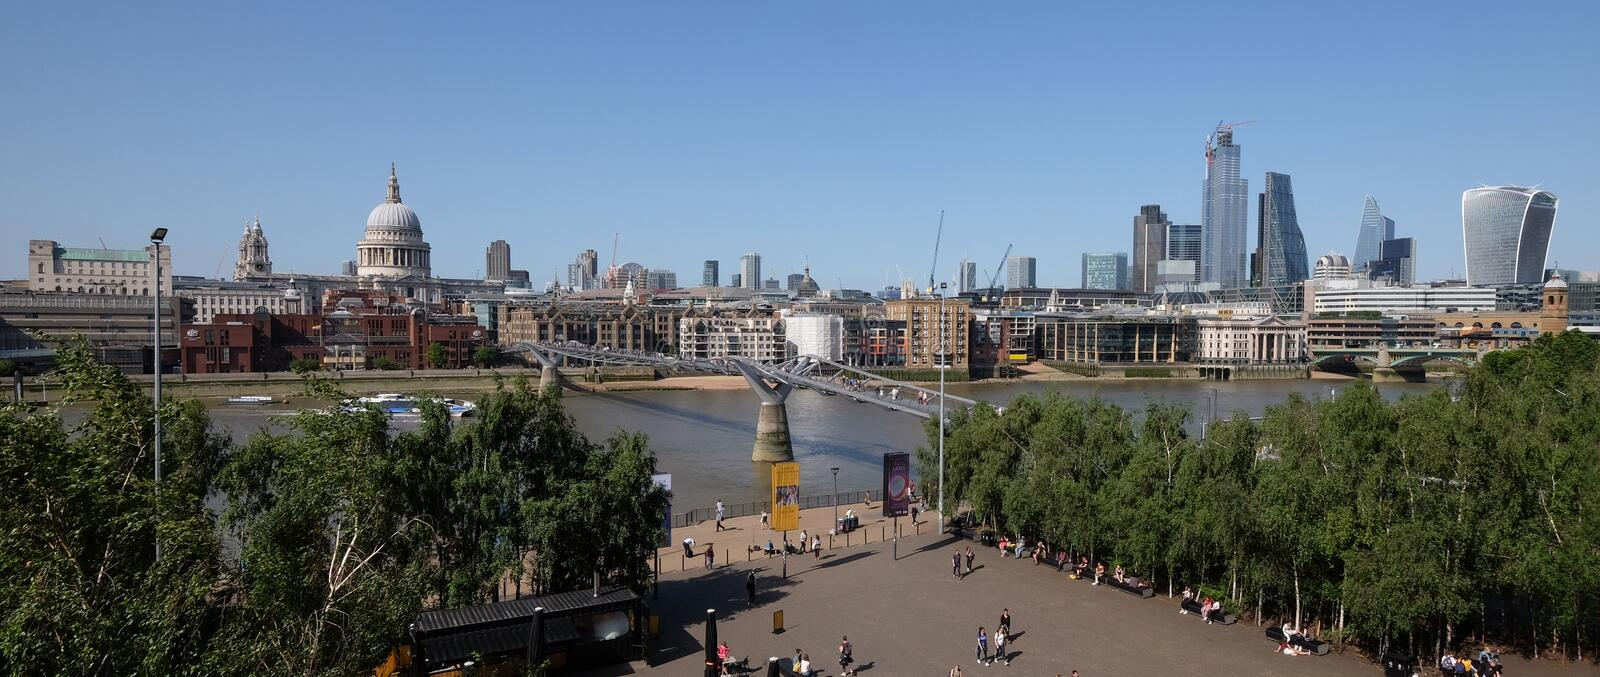 Stad av London, Förenade kungariket 6th Juli 2019: London horisontpanorama som ses från den södra banken royaltyfri foto